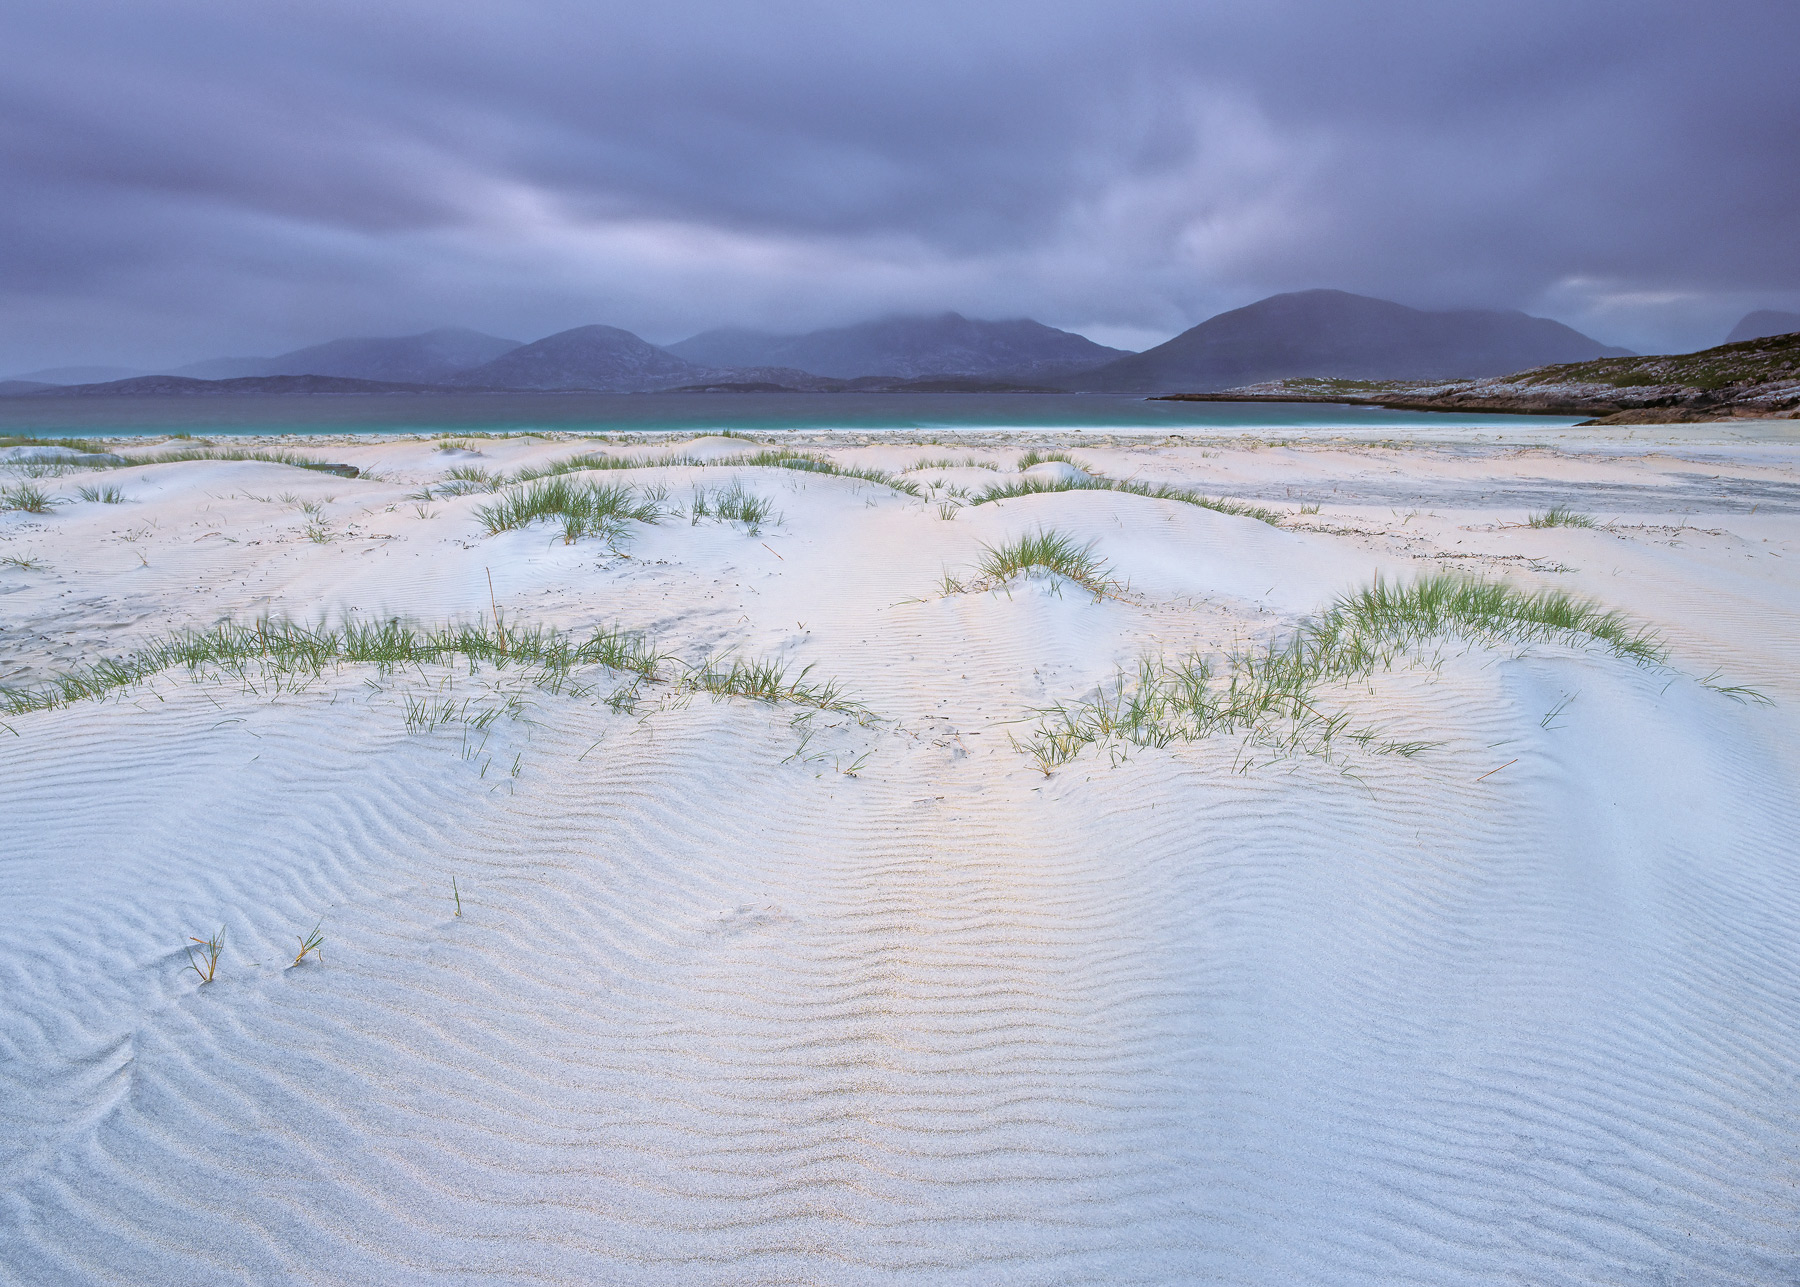 Traigh Rosamol near Luskentyre bay has always been a bit of a favourite of mine.  Not many beaches can boast a mountain backdrop...